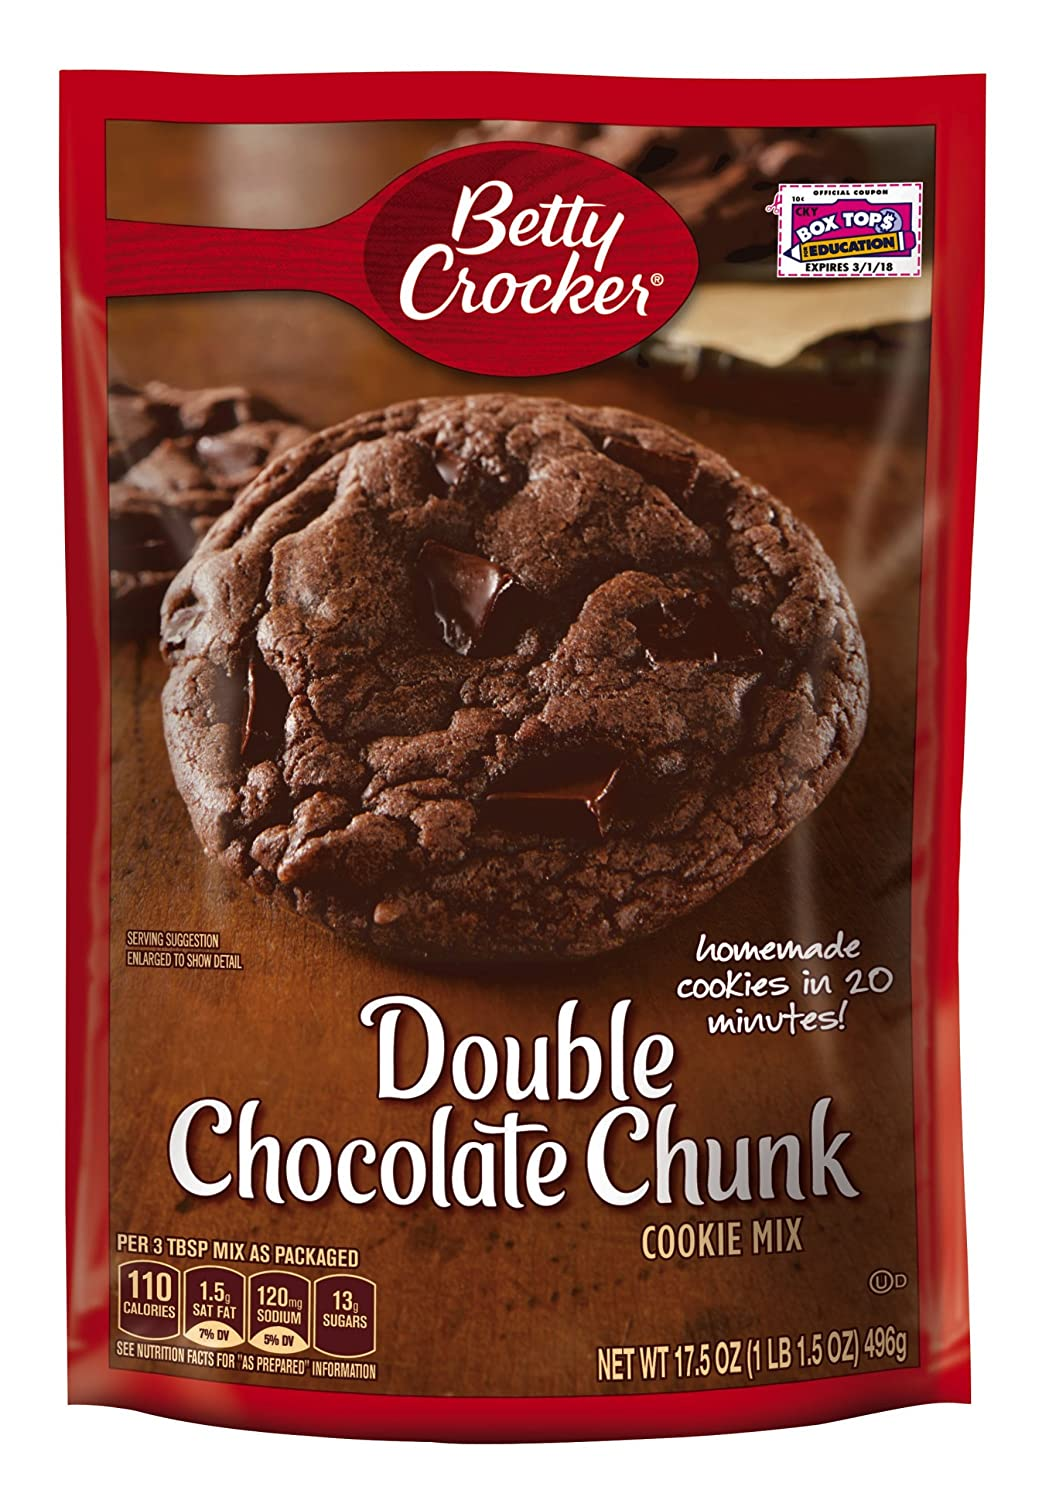 Betty Crocker Chocolate Chip Cookies From Cake Mix